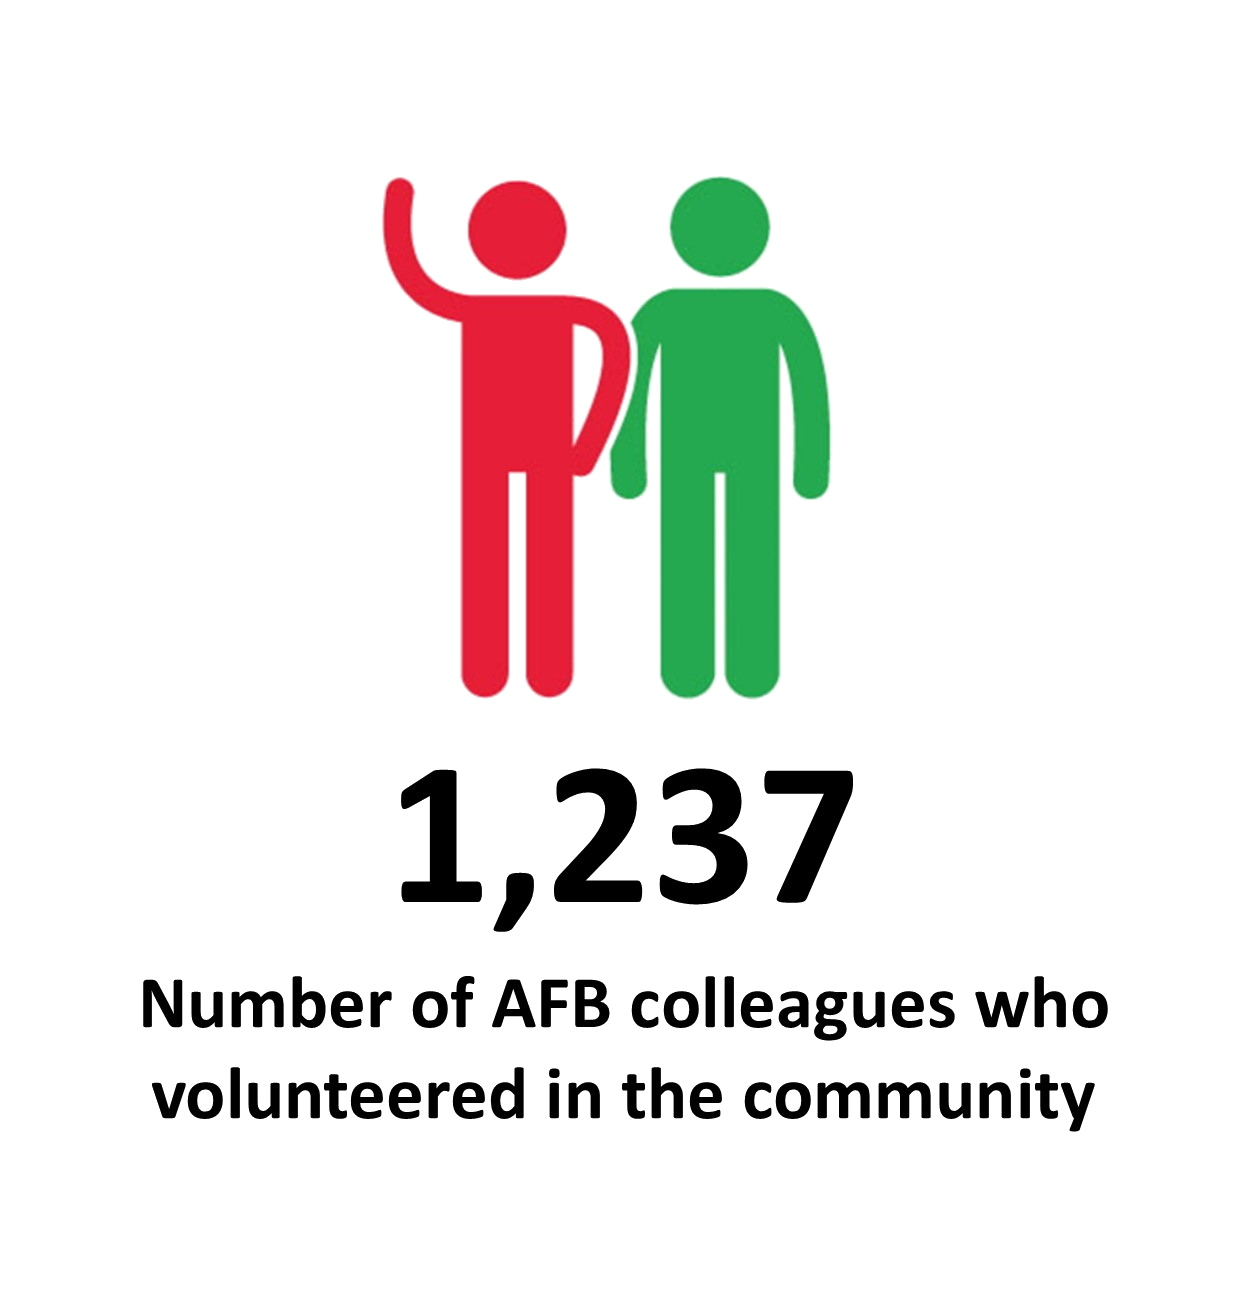 Number_of_AFB_colleagues_who_volunteered_in_the_community